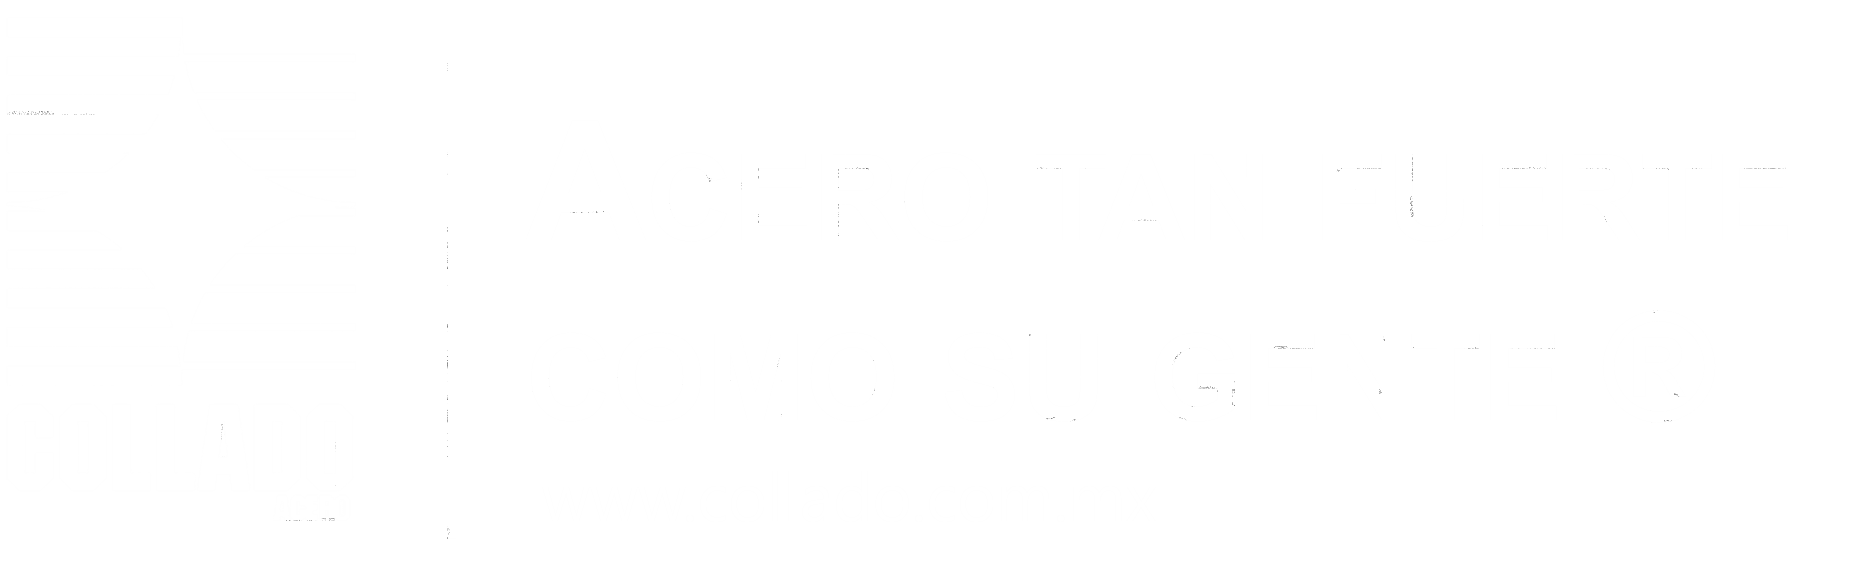 https://www.collado.com.mx | Grupo Collado S.A. de C.V.